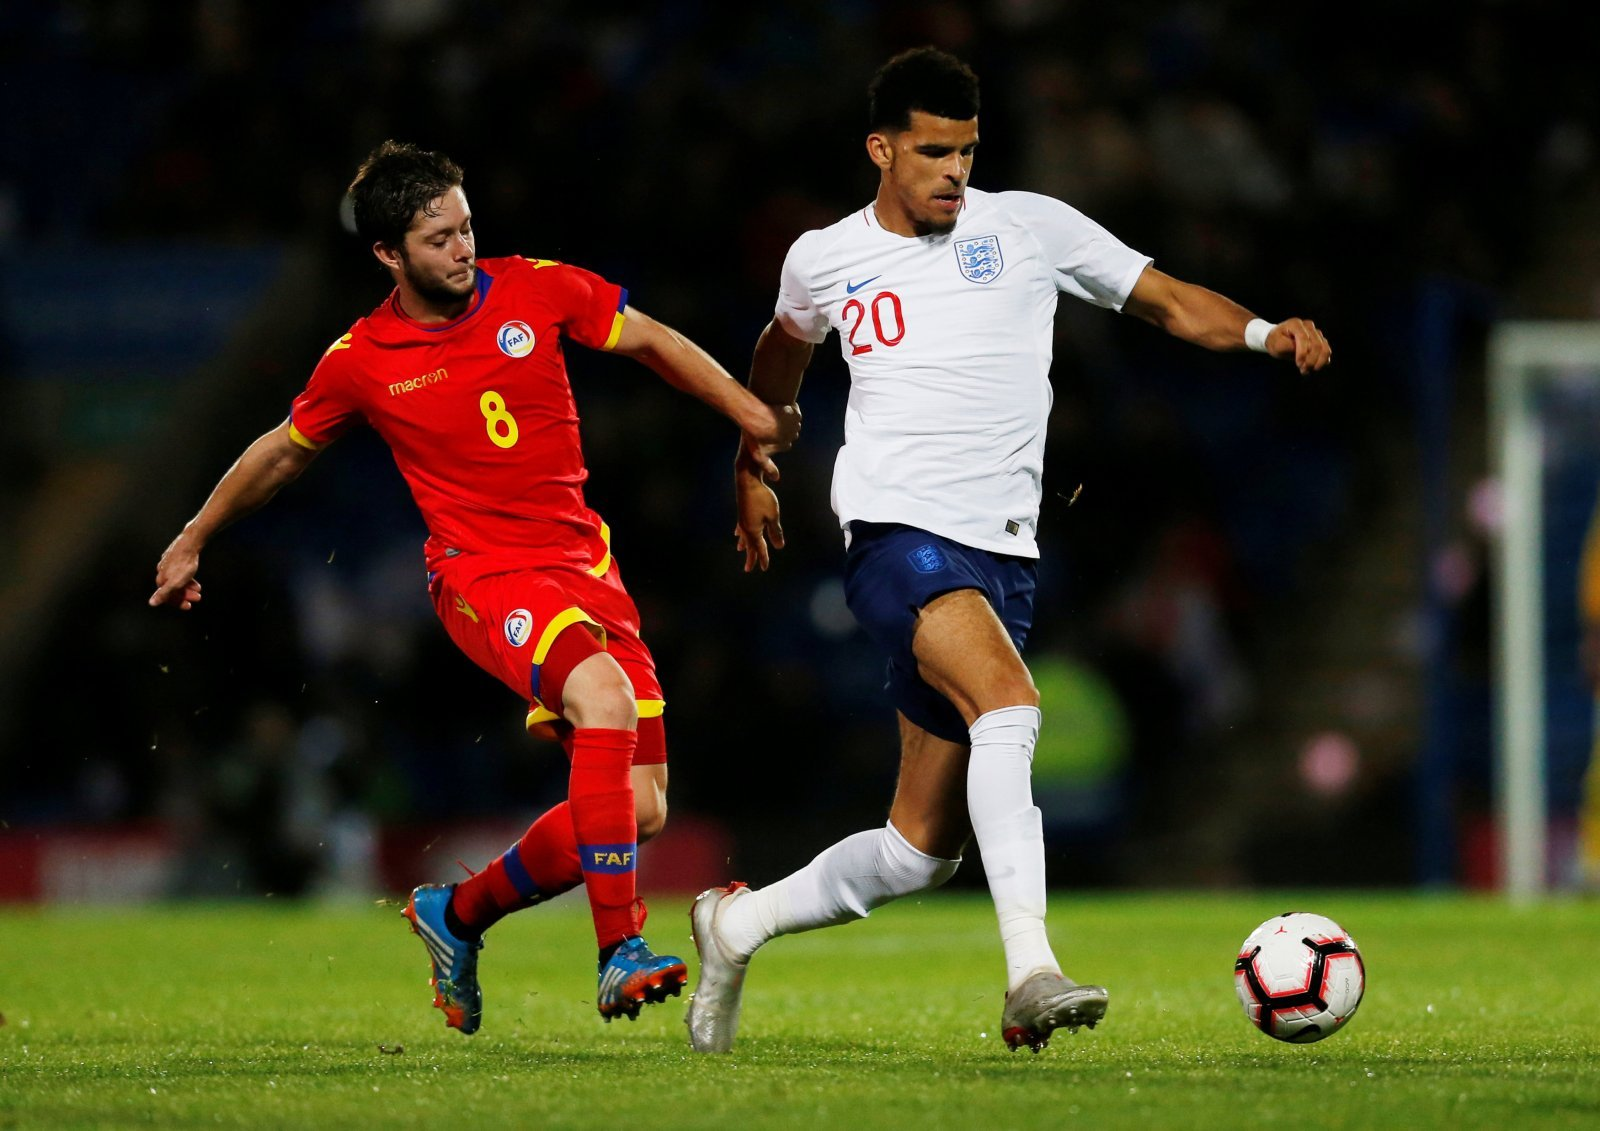 Dominic Solanke linked with Wolves and Huddersfield